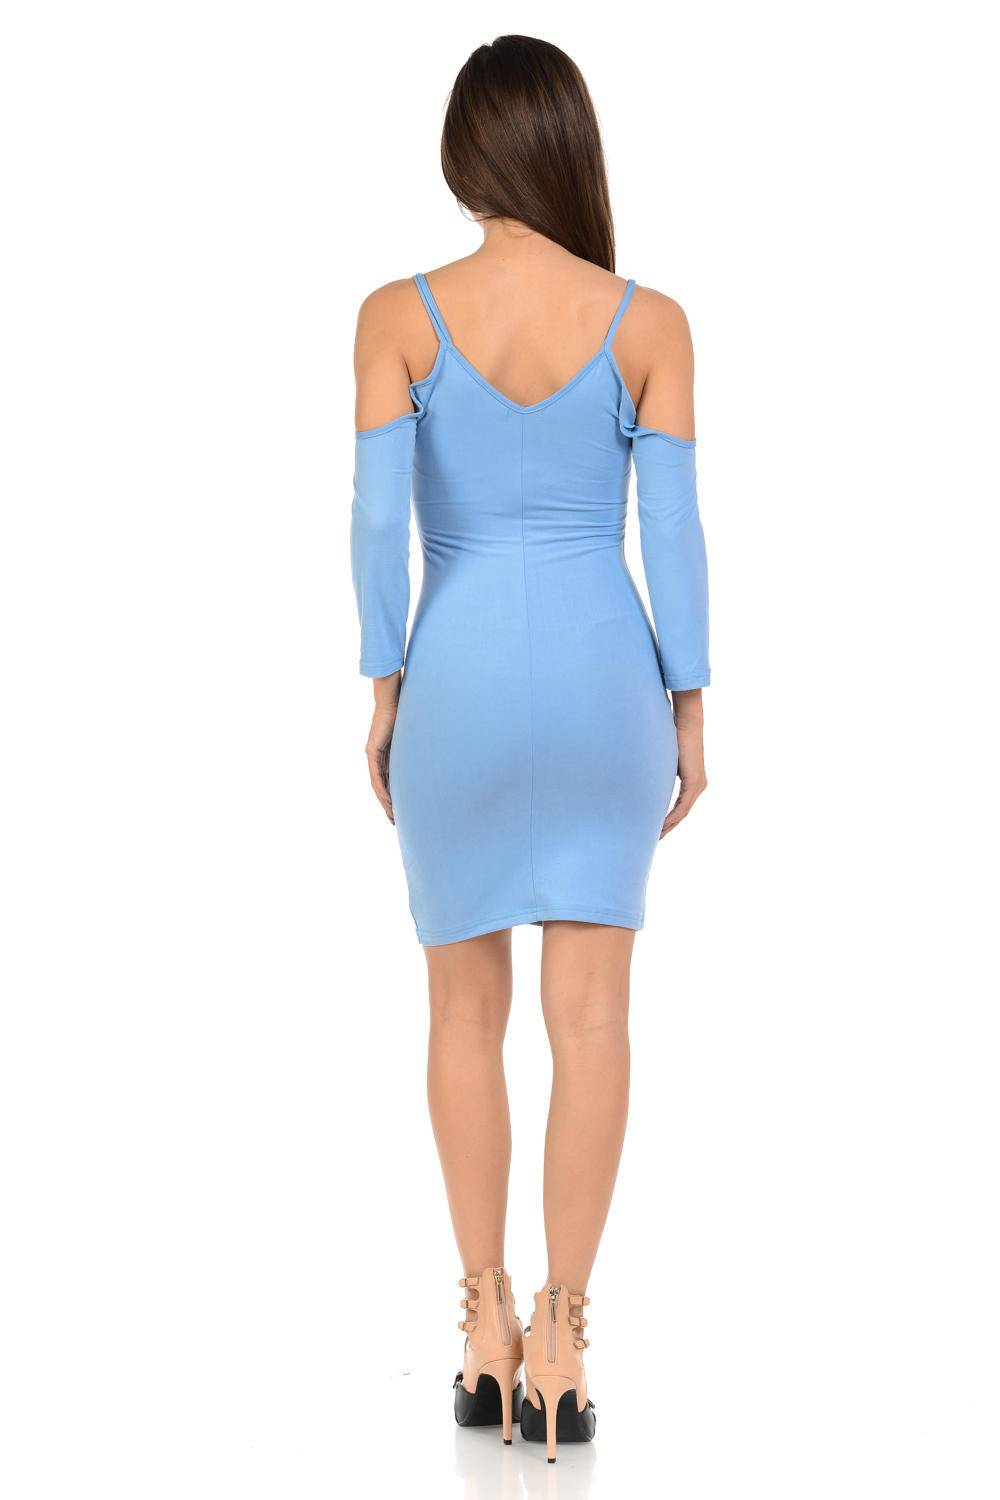 Diamante Fashion Women's Dress · Style D133